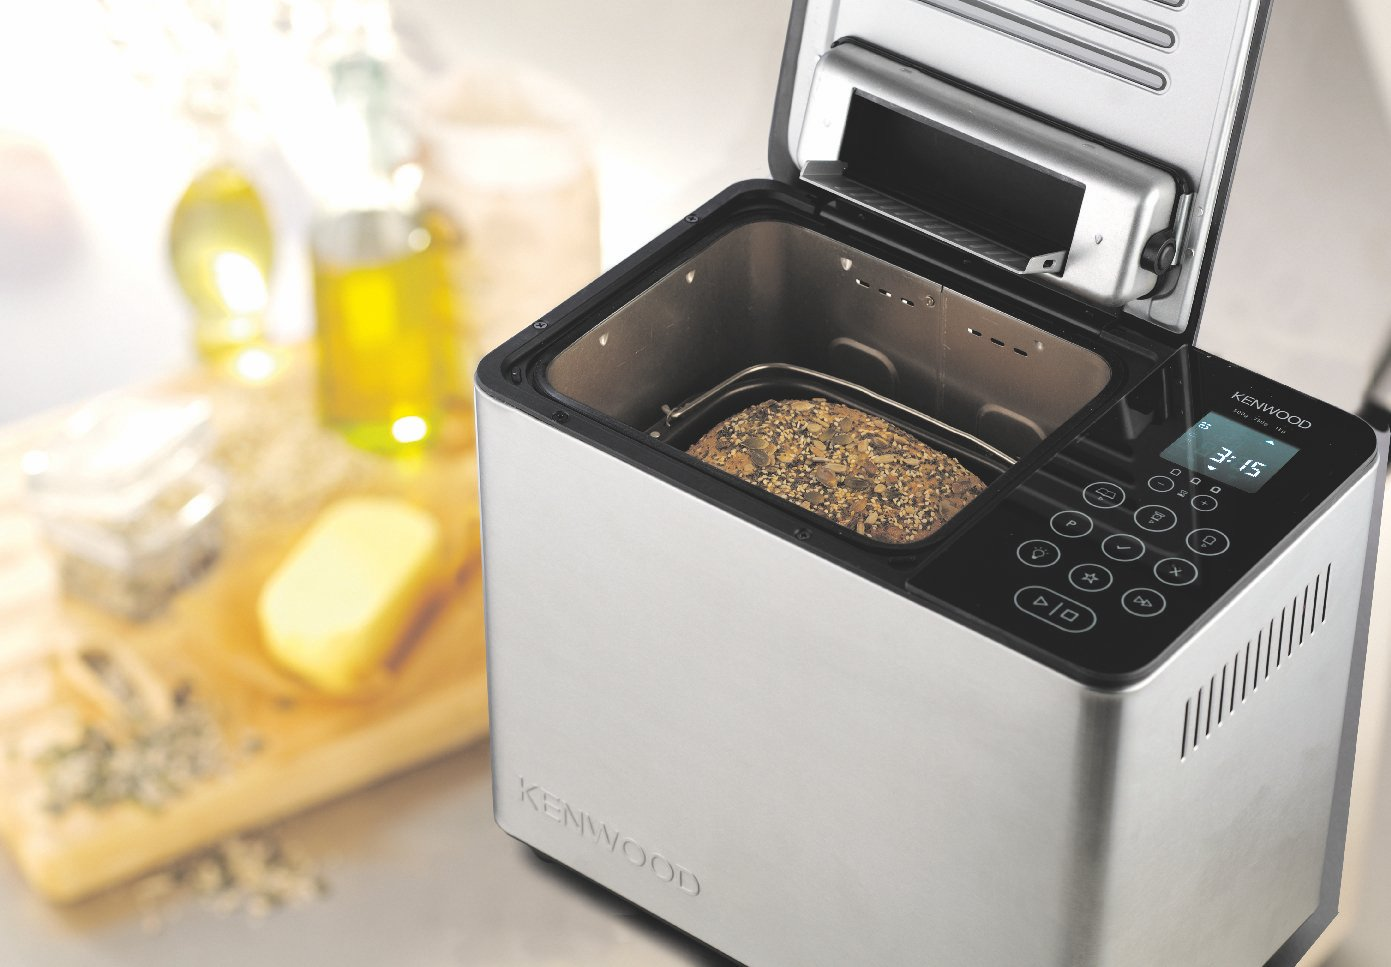 Kenwood BM450 Artisan Bread Maker 20 programs Silver: Amazon.sg: Home